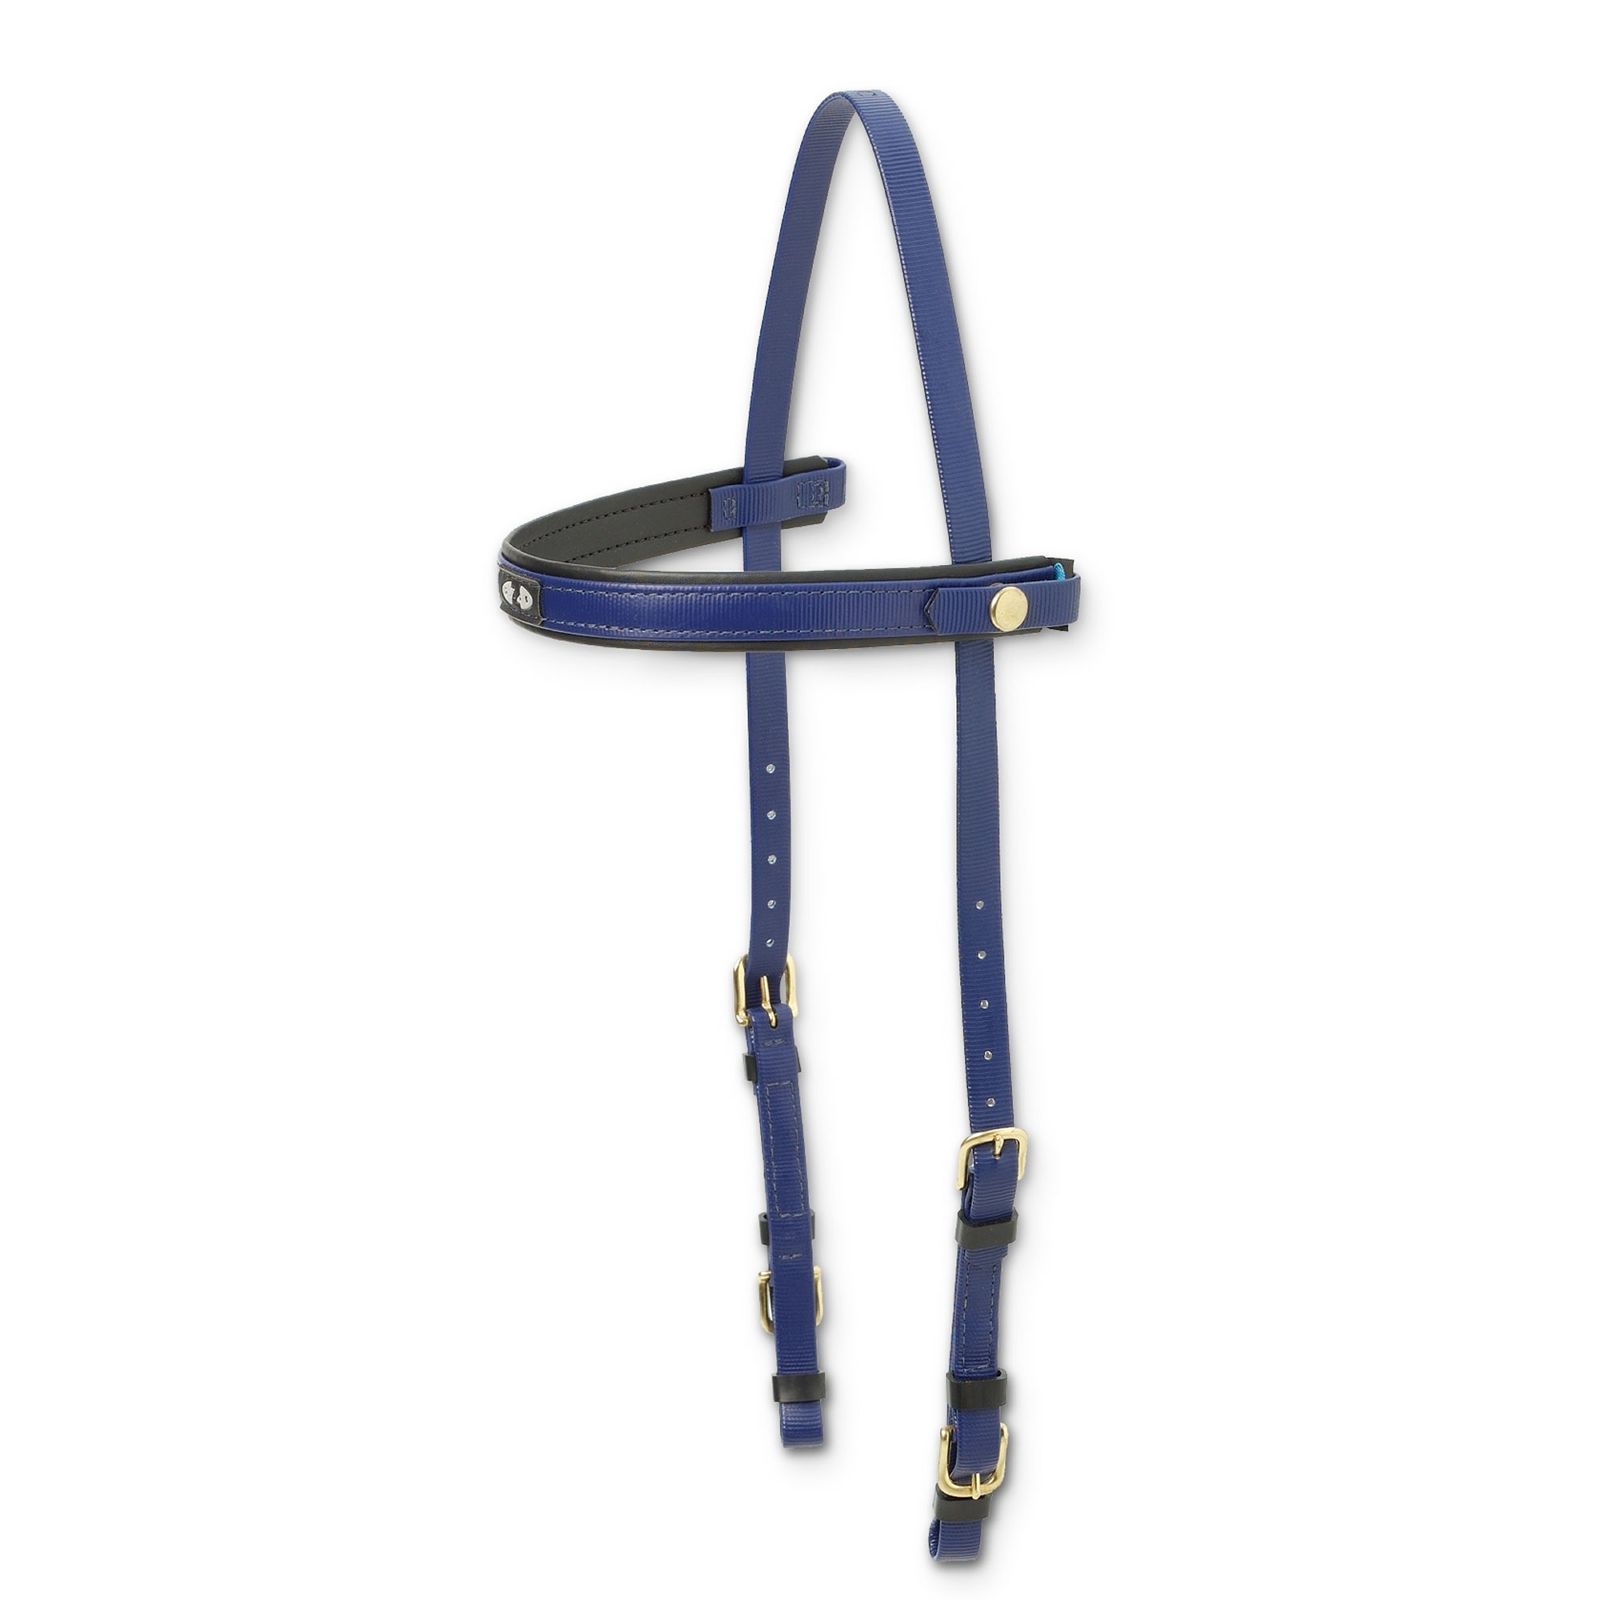 Zilco Deluxe Endurance Bridle - Headstall Only